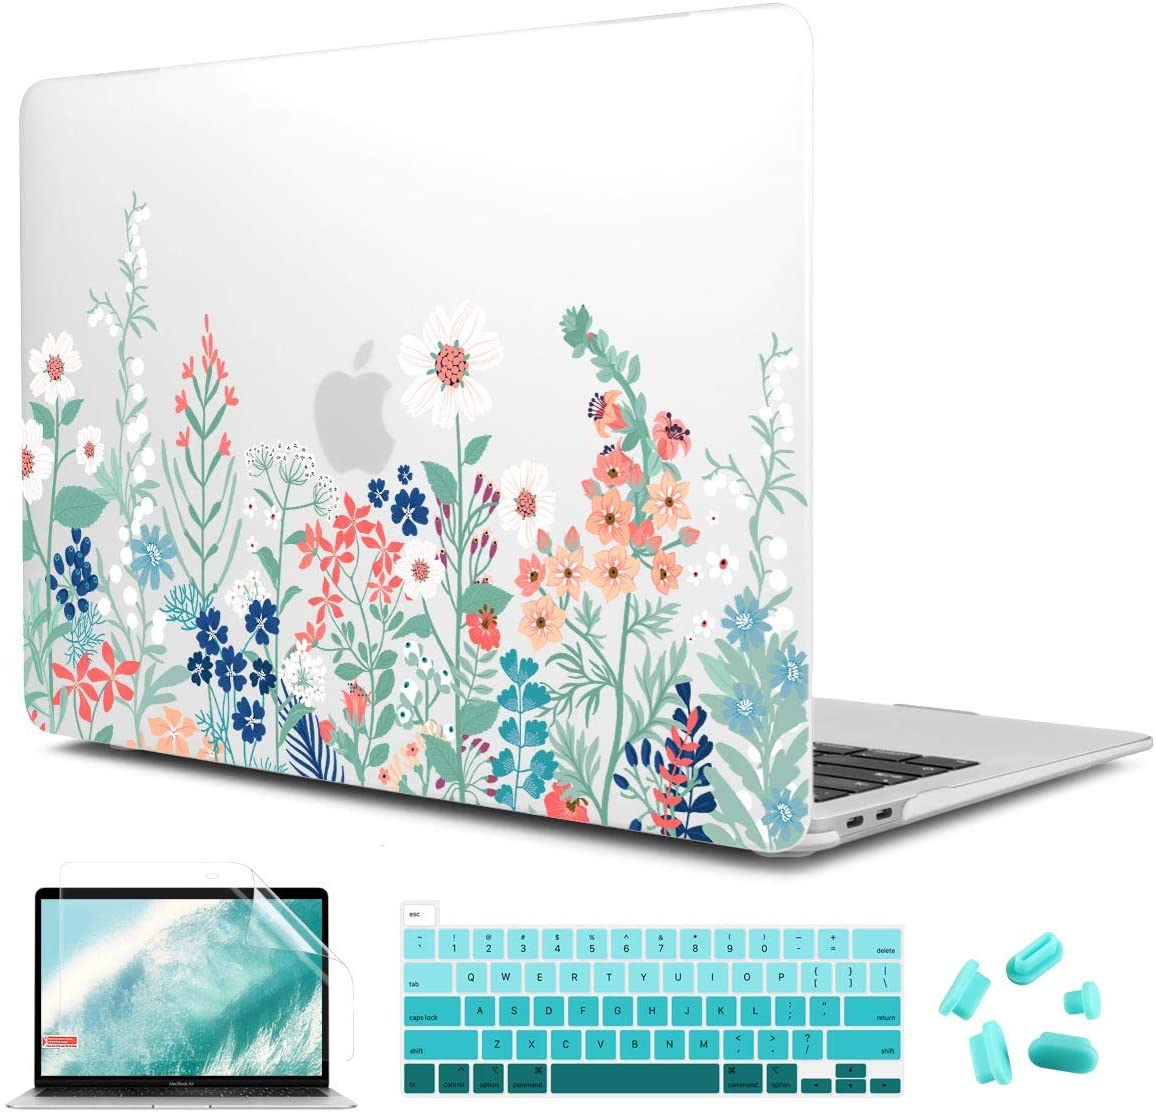 CiSoo Matte Frosted Hard Shell Case for New MacBook Pro 13 inch 2020 Release Model A2251 A2289 with Touch Bar and Touch ID,Plastic Flower Pattern Hard Cover with Keyboard Cover&Screen Protector